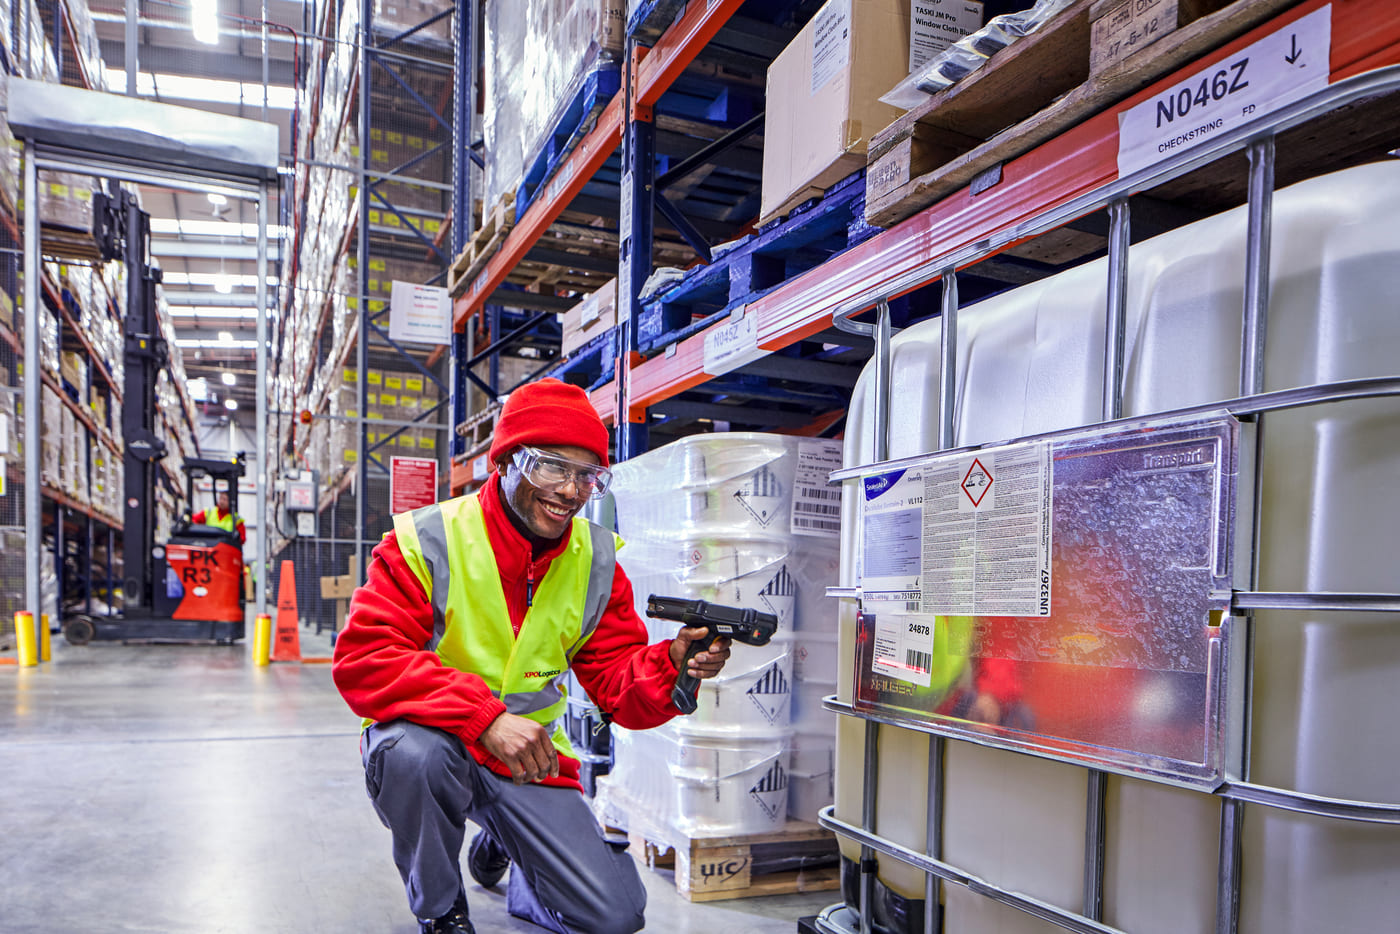 XPO Employee Scanning